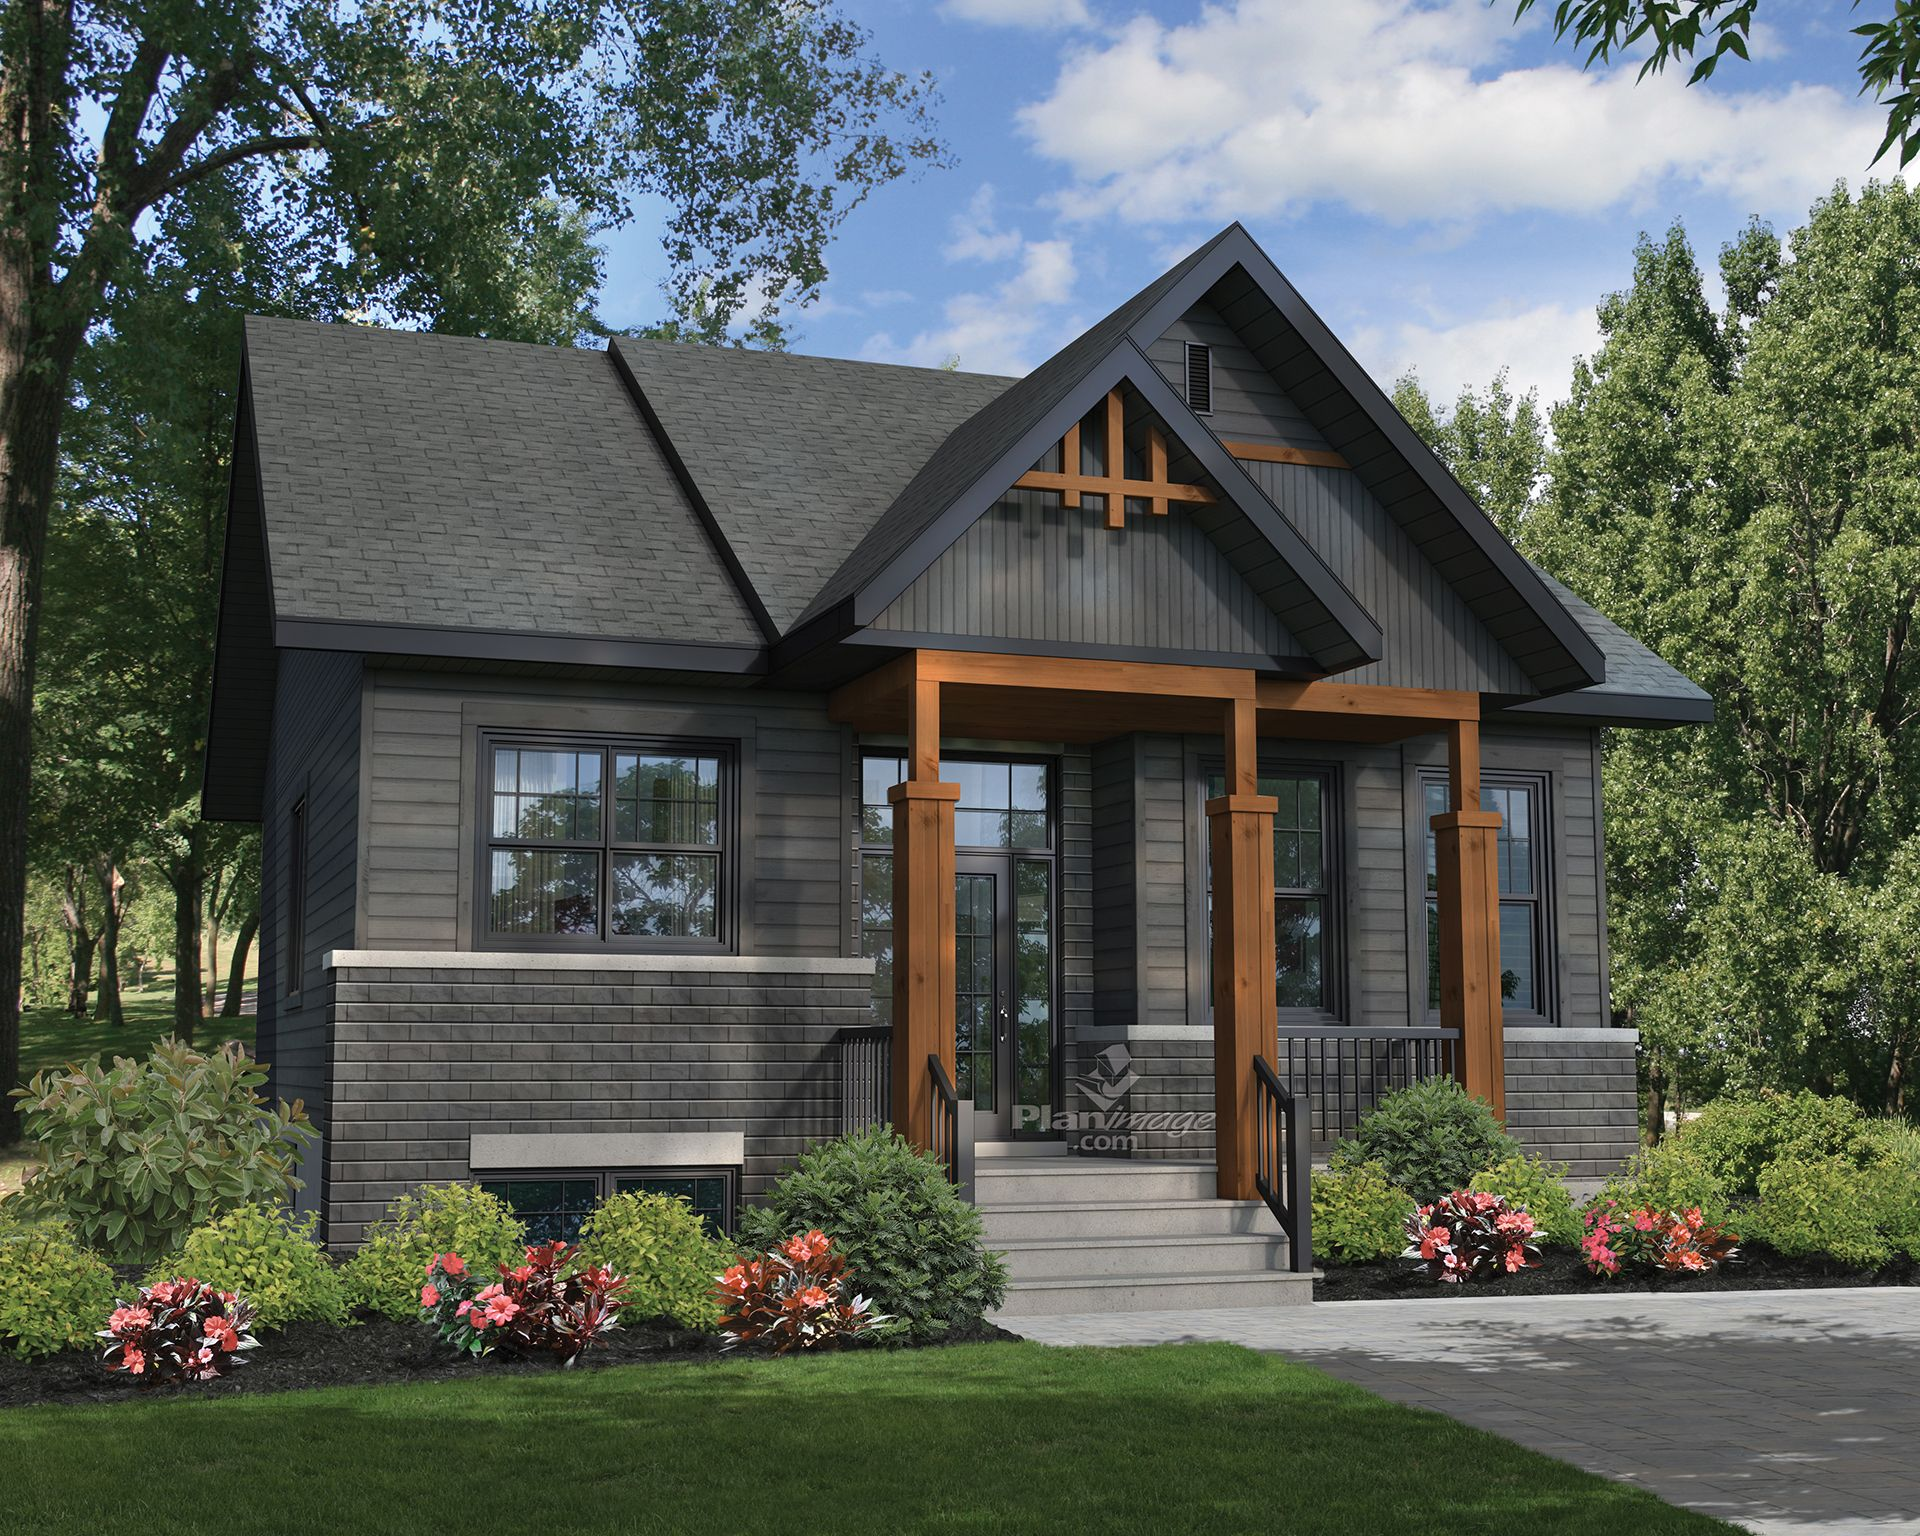 With Its Gabled Roof Its Small Covered Balcony And Stone And Wood Siding This Aspen Style Maison Plain Pied Revetement Exterieur Maison Revetements De Maison